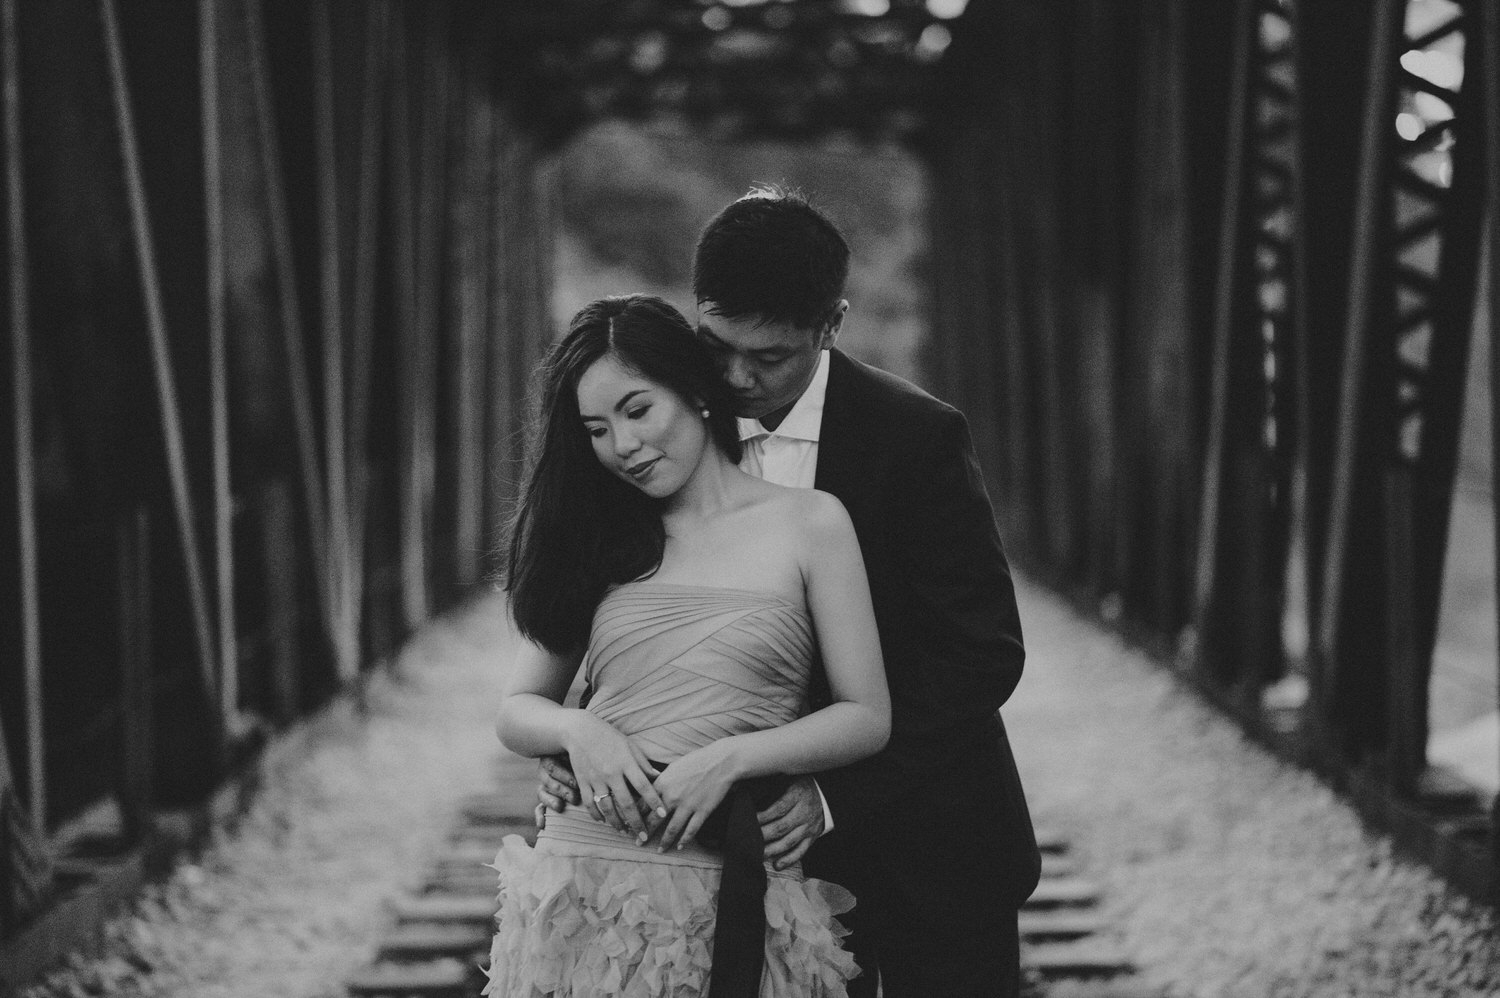 singapore prewedding destination - singapore wedding - diktatphotography - kadek artayasa - nikole + ardika - 42